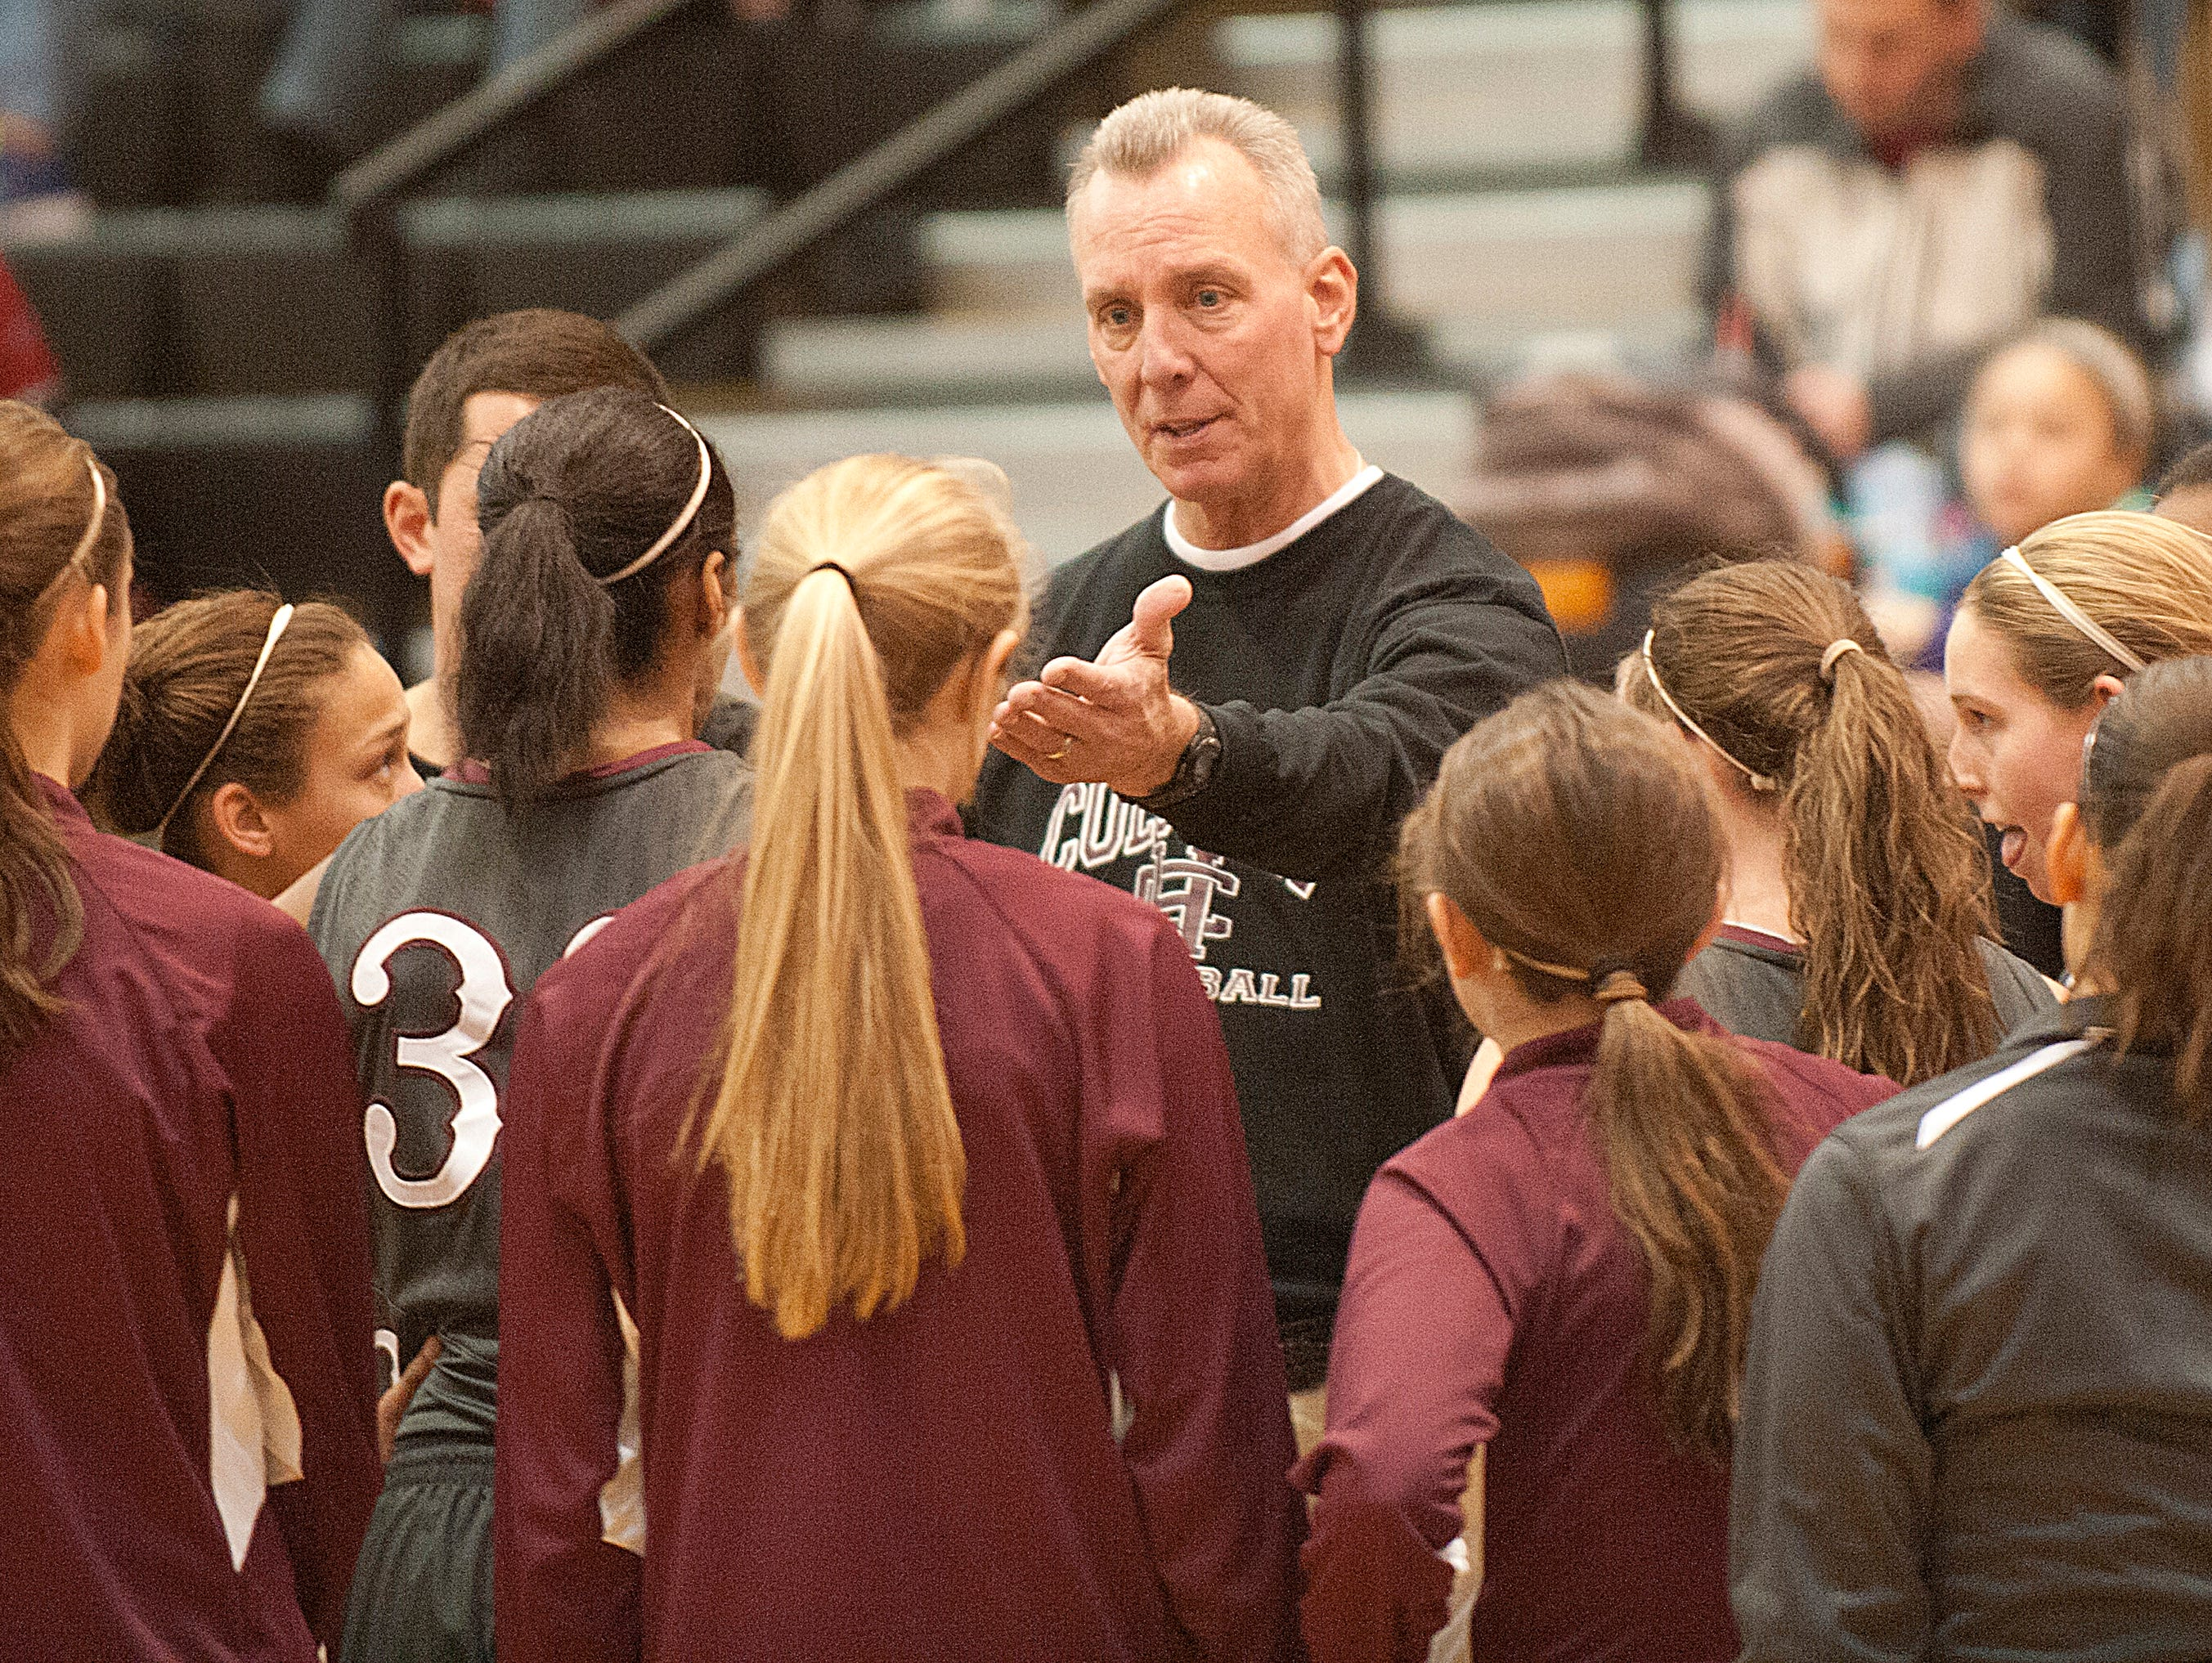 Henderson County Lady Colonels head basketball coach Jeff Haile talks to his players during a time-out. 24 January 2015